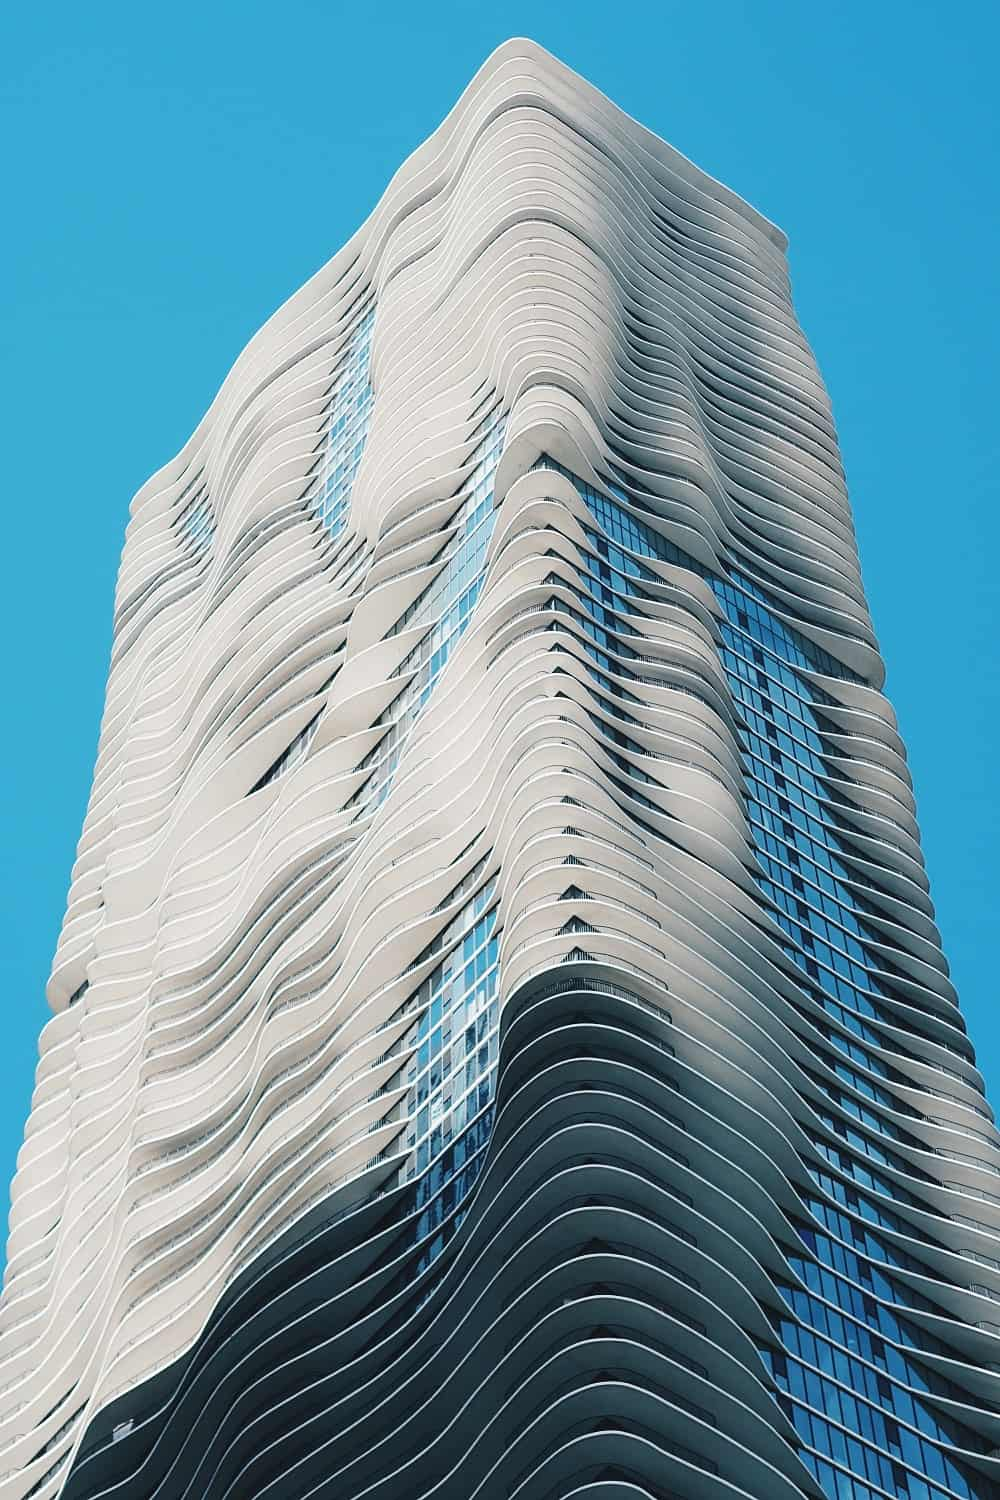 Aqua Tower's balconies give the tower an undulating look.